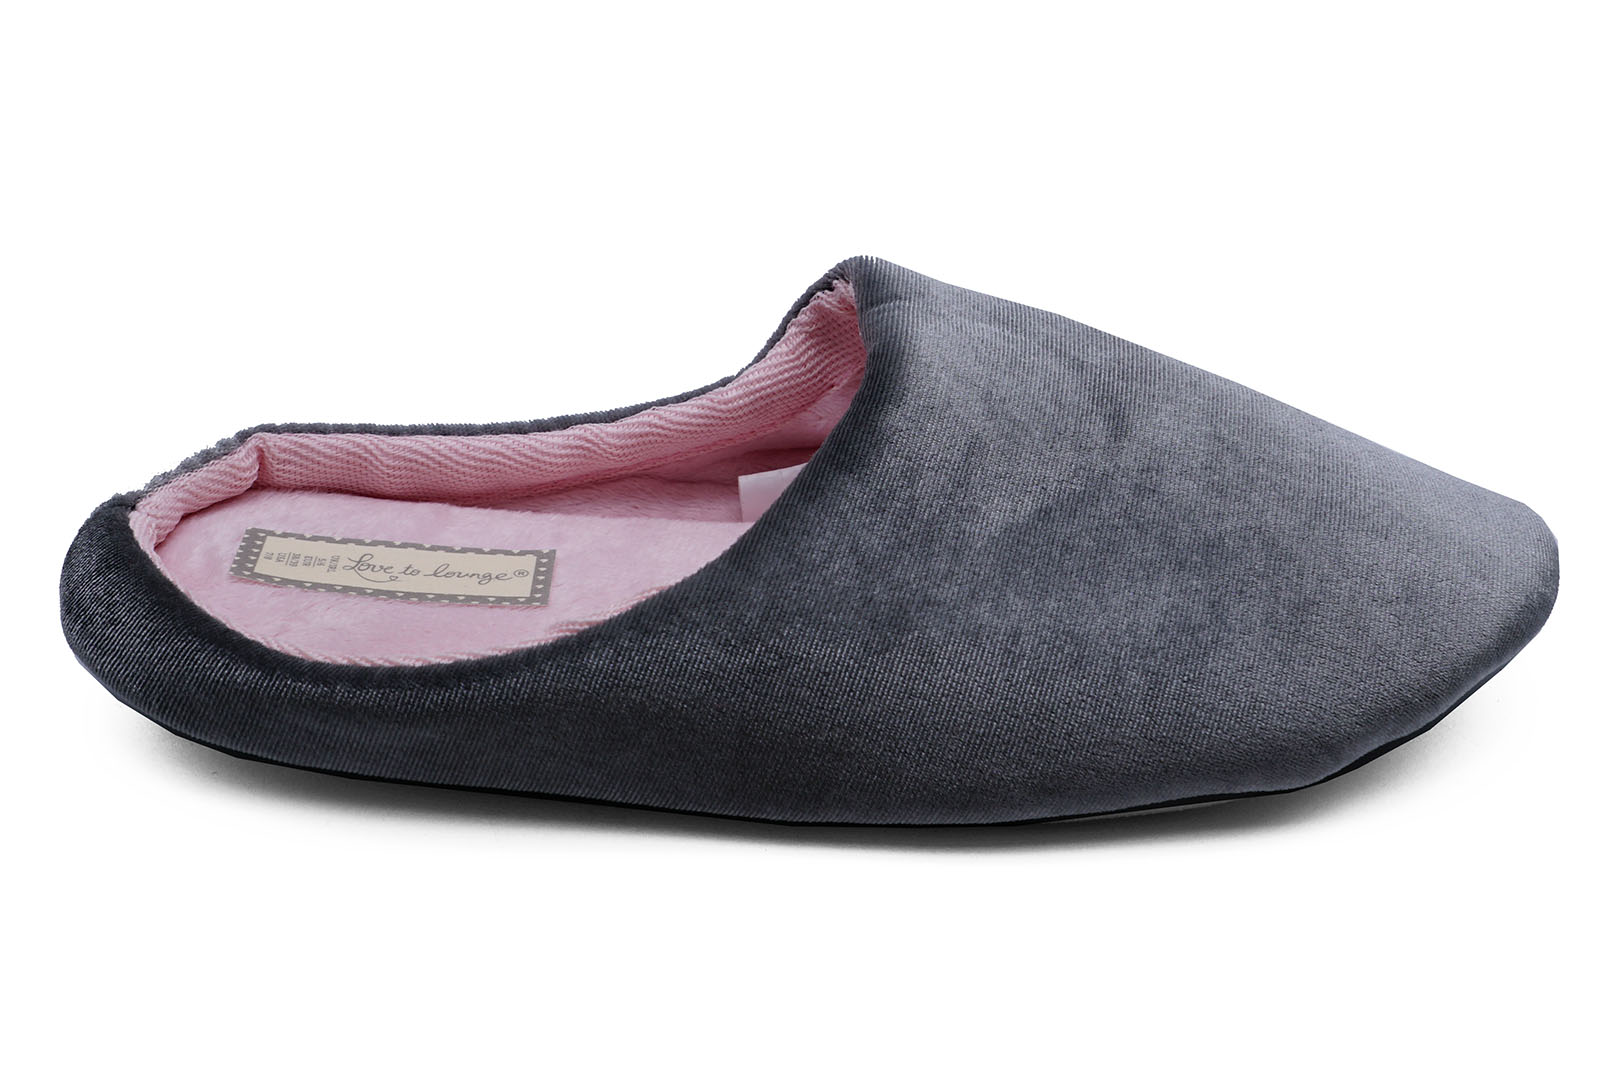 LADIES-GREY-SLIP-ON-COMFY-MULES-WARM-INDOOR-OUTDOOR-SLIPPERS-HOUSE-SHOES-3-8 thumbnail 5